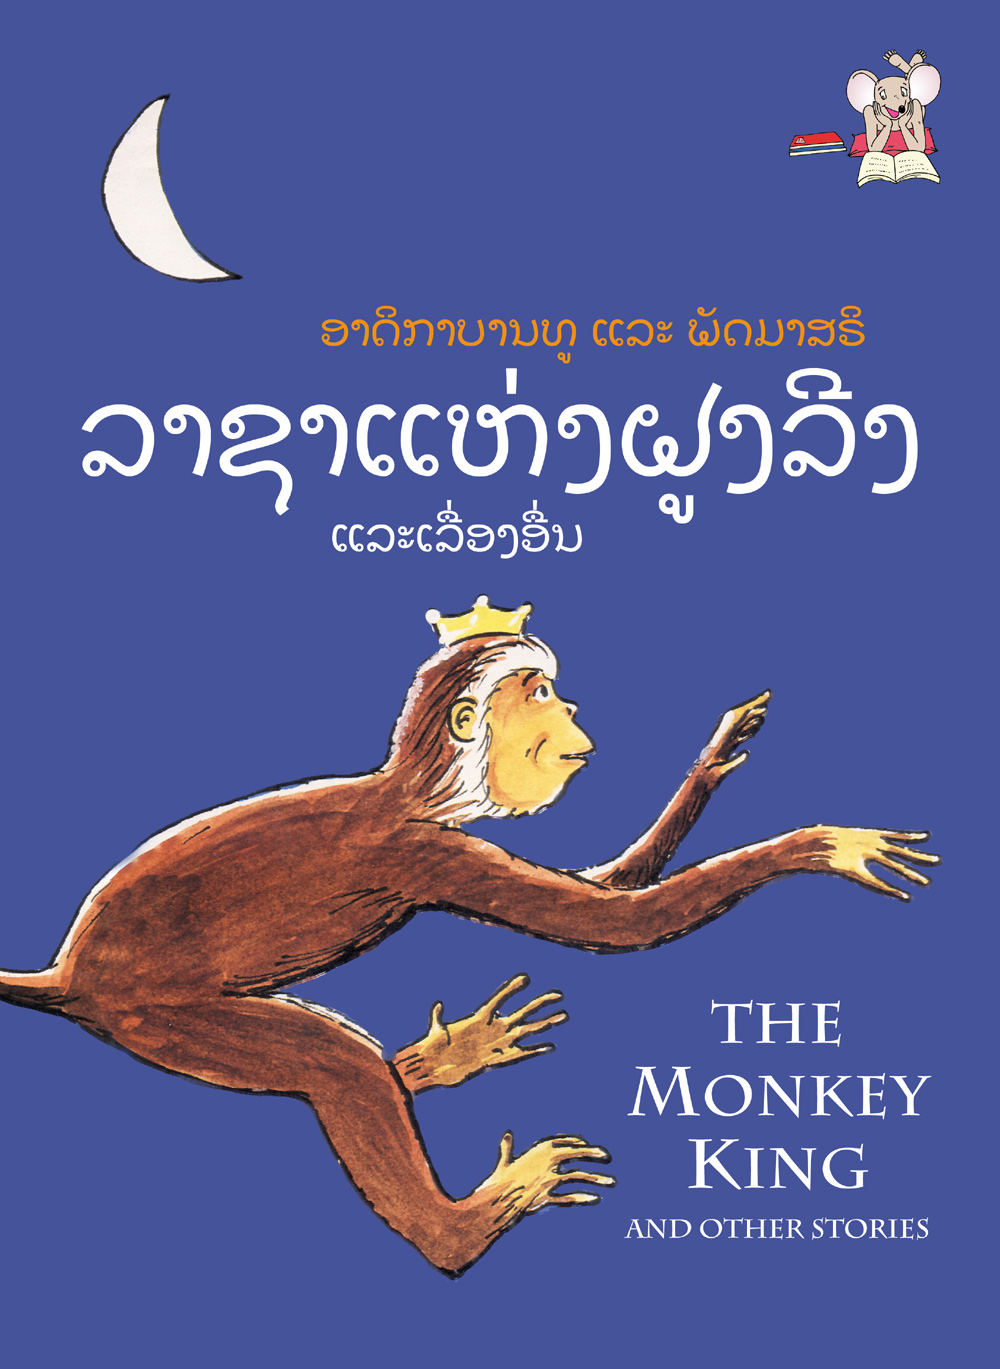 The Monkey King large book cover, published in Lao and English